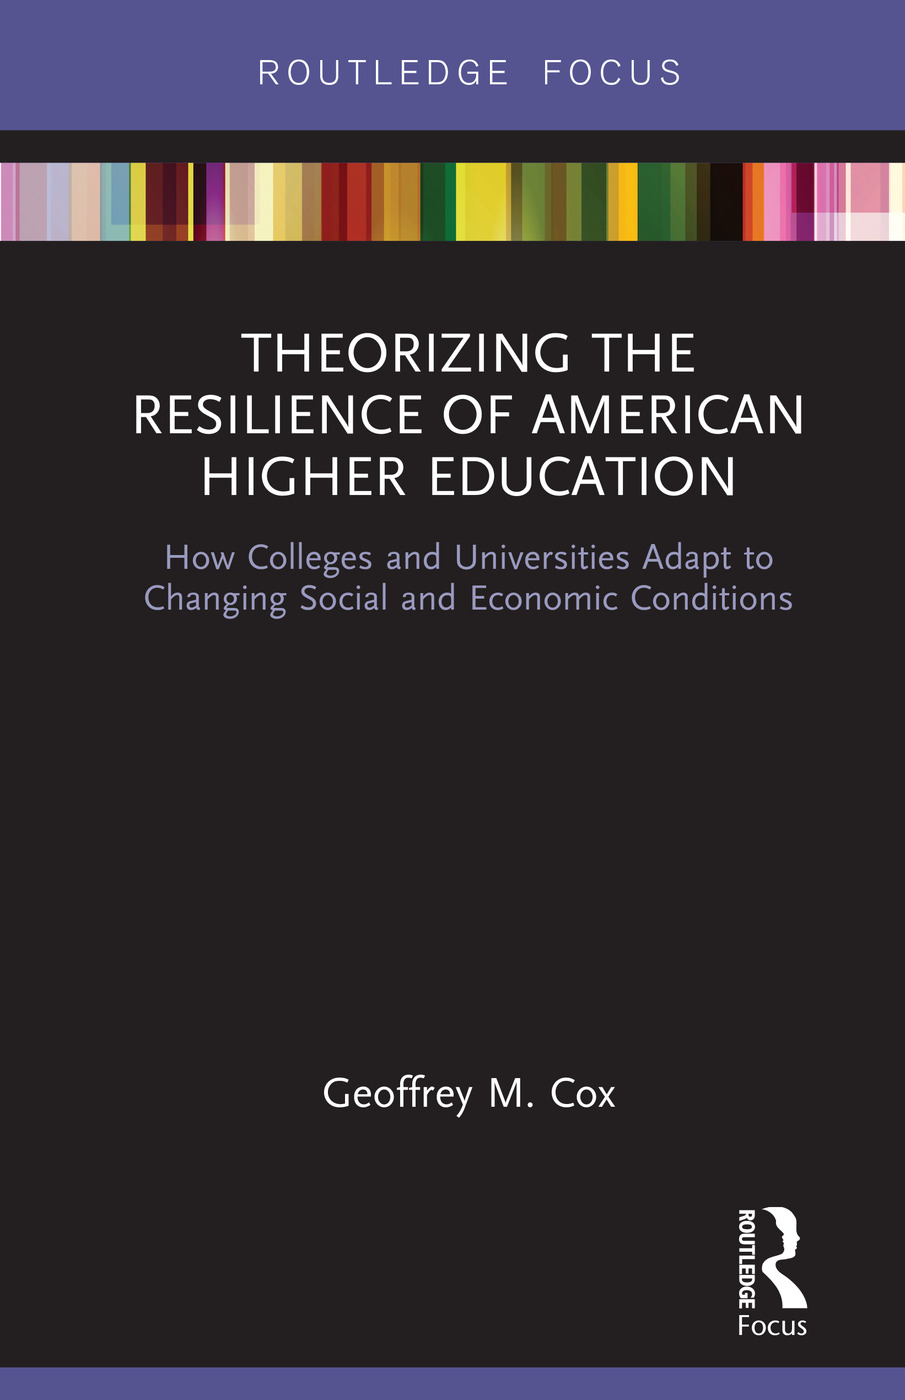 Theorizing the Resilience of American Higher Education: How Colleges and Universities Adapt to Changing Social and Economic Conditions book cover